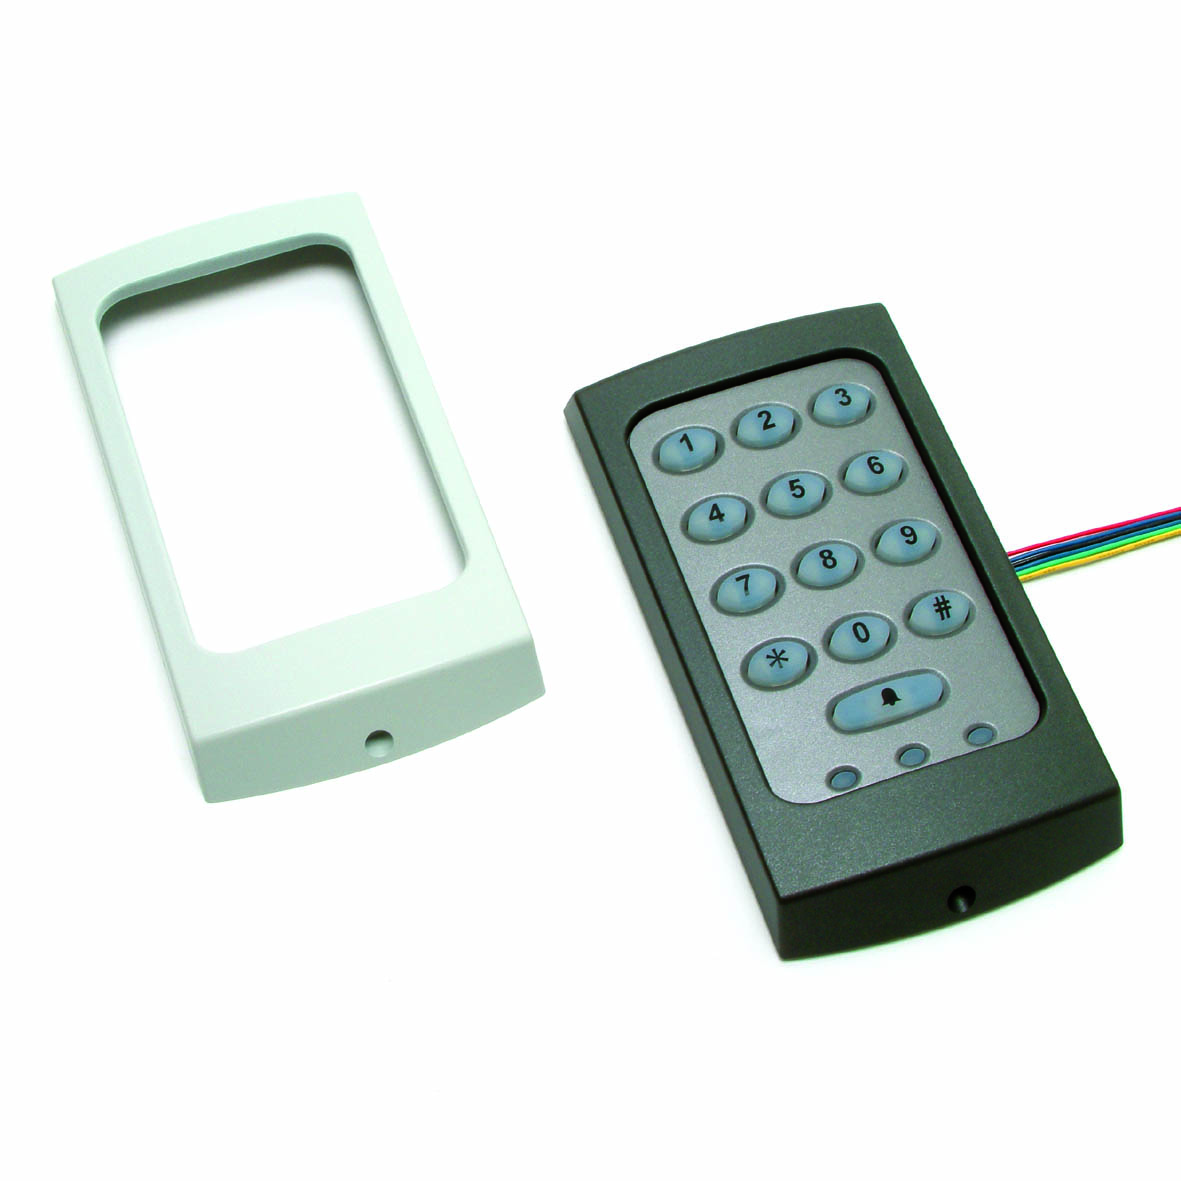 TOUCHLOCK keypad - K75